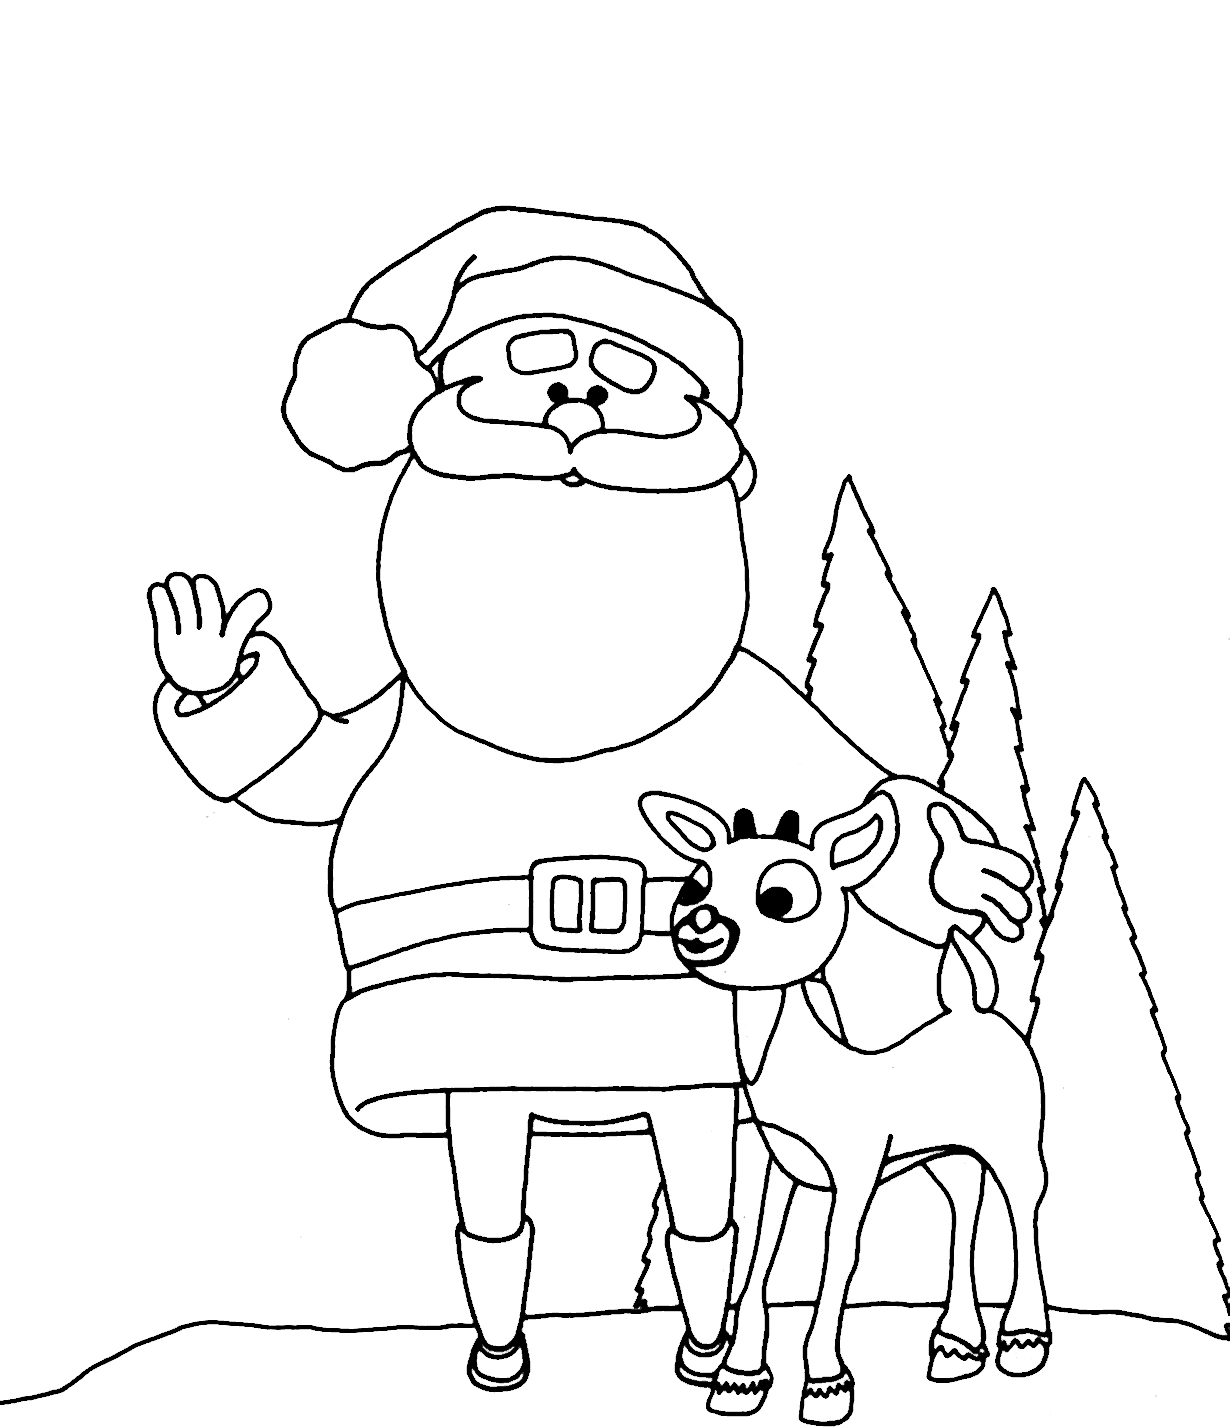 santa claus pictures to print santa claus printable coloring pages for christmas santa print pictures to claus